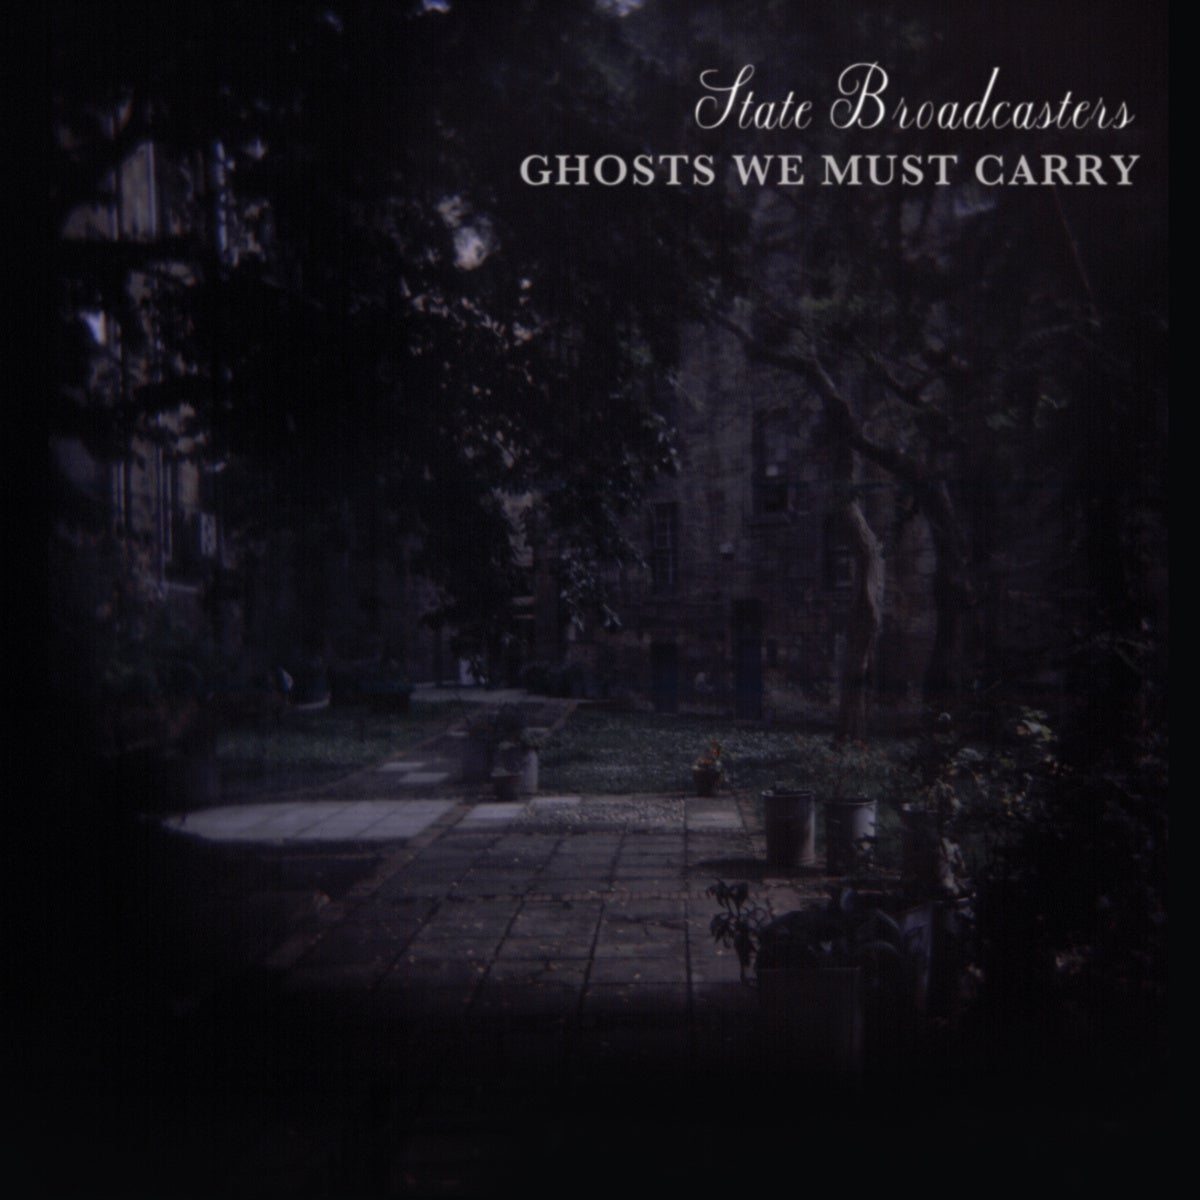 (CD) State Broadcasters - Ghosts We Must Carry